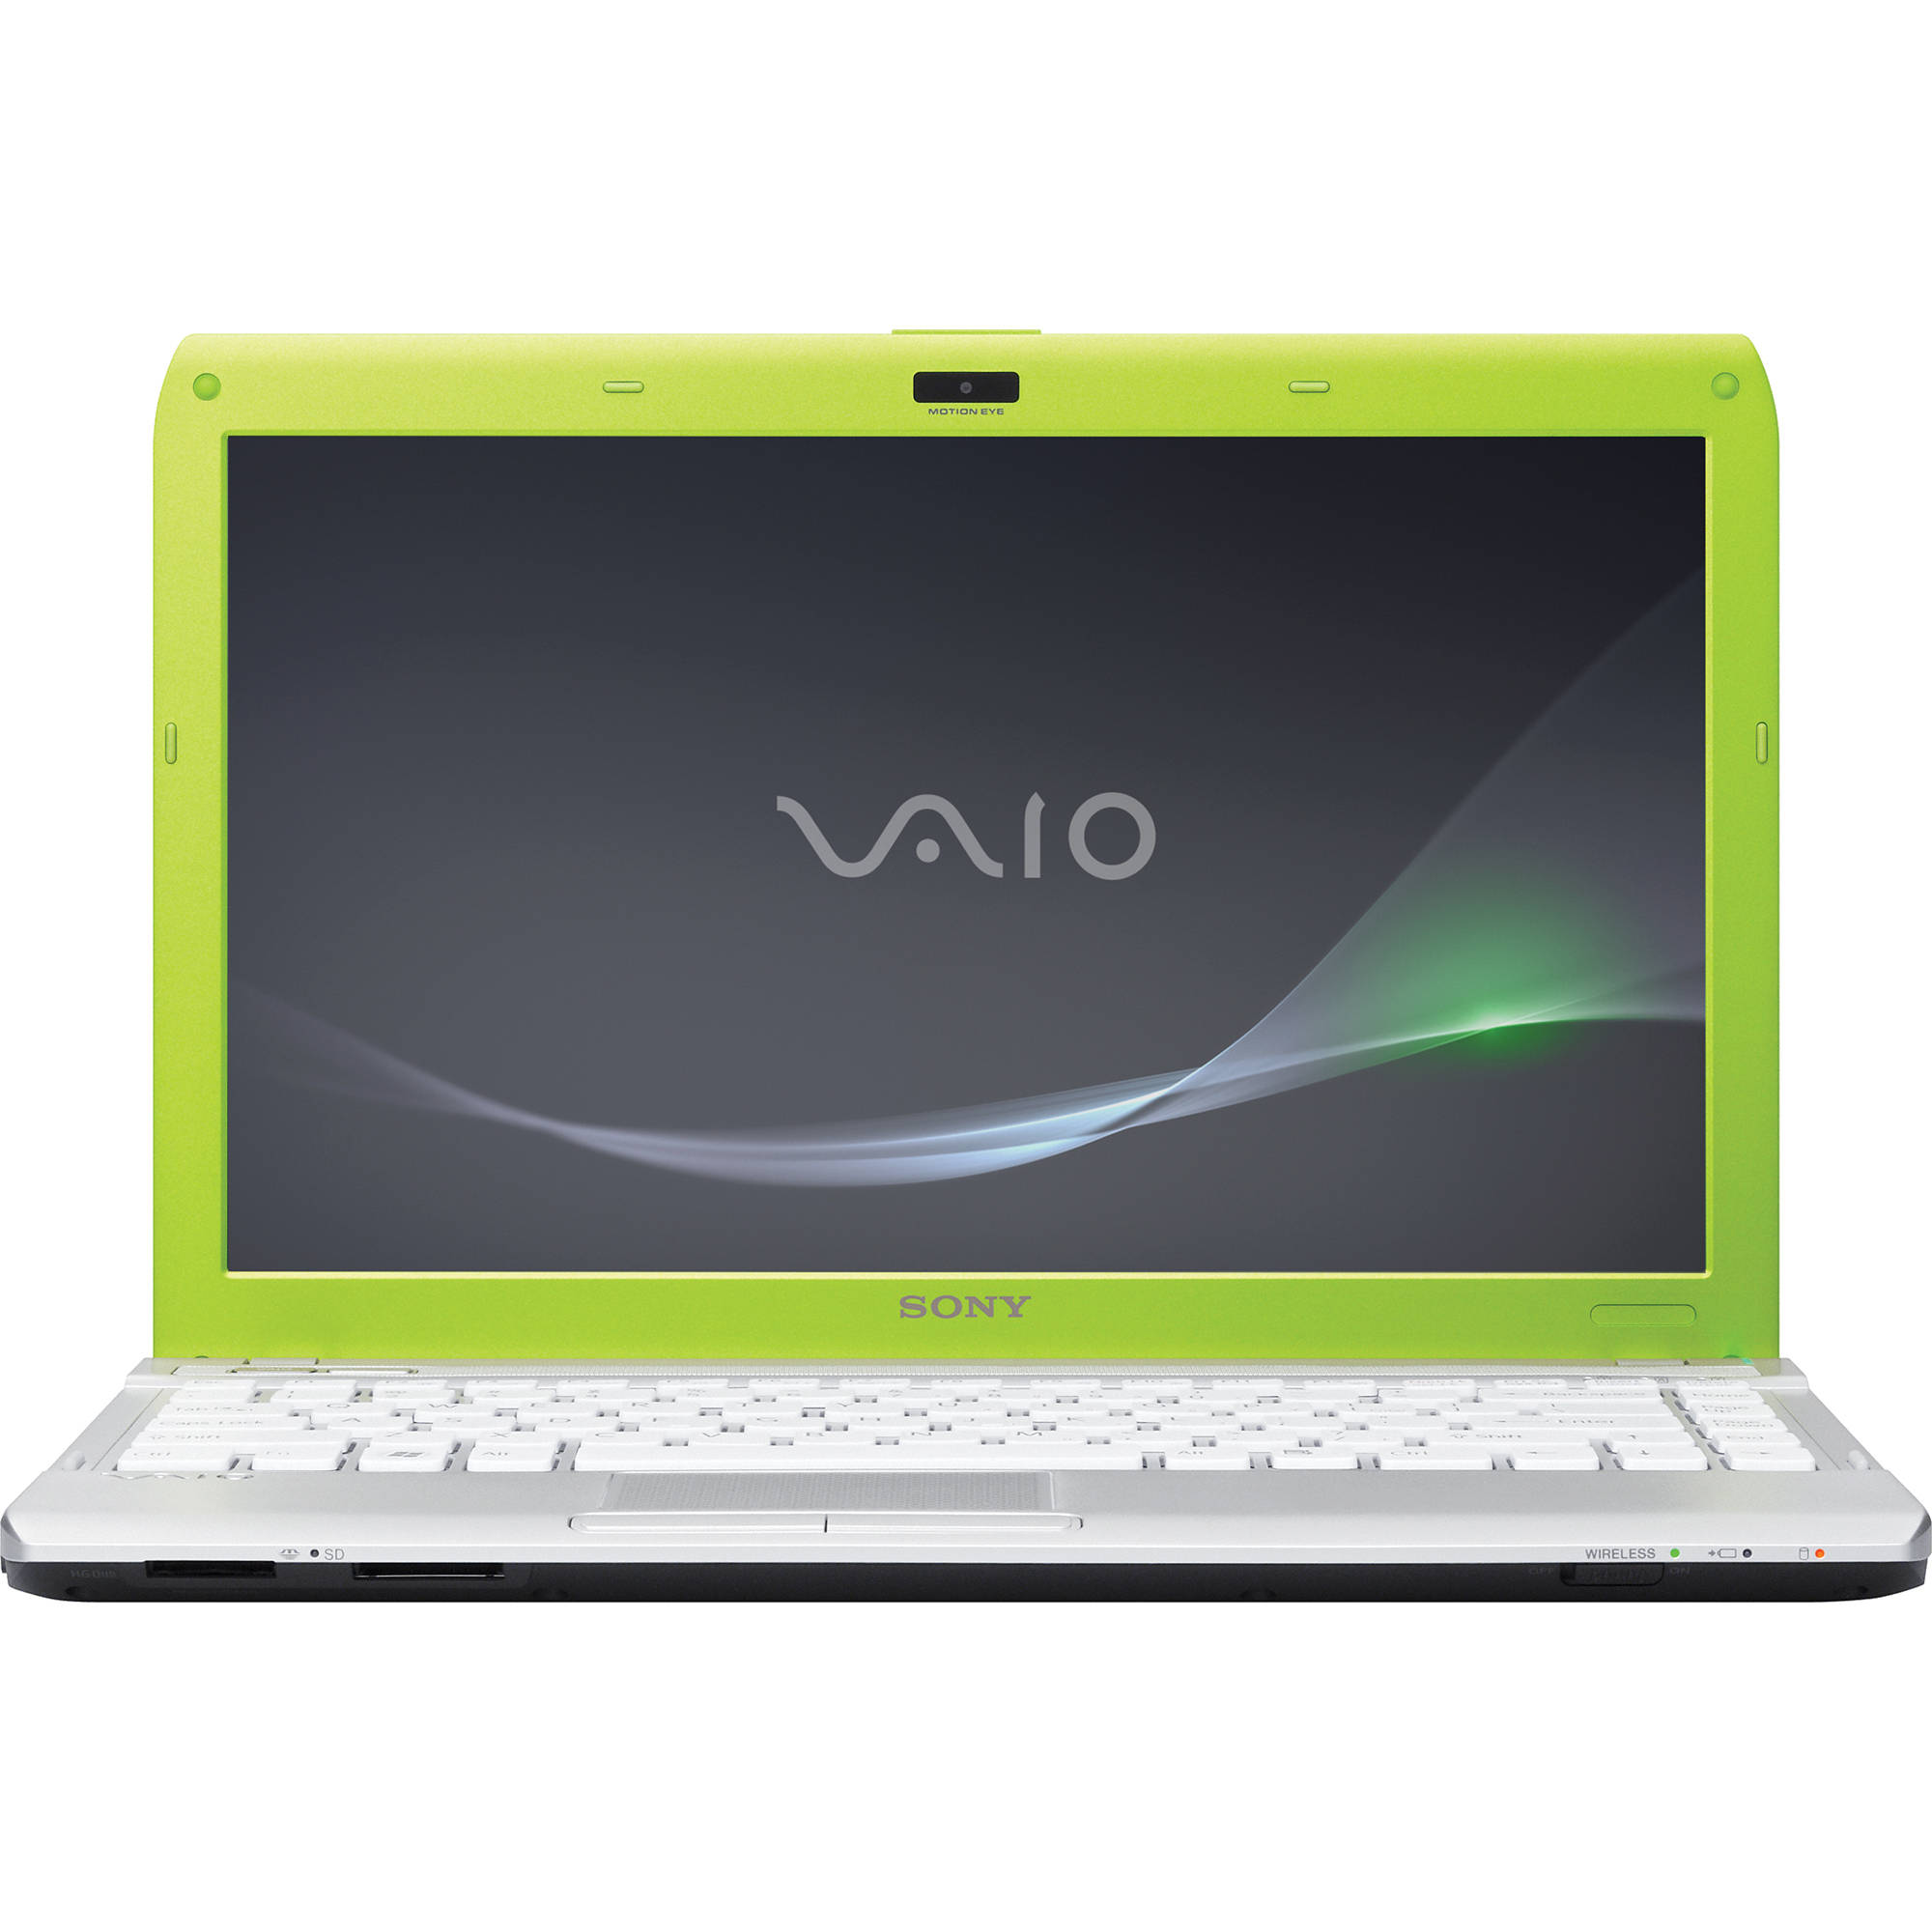 DOWNLOAD DRIVER: SONY VAIO OSD